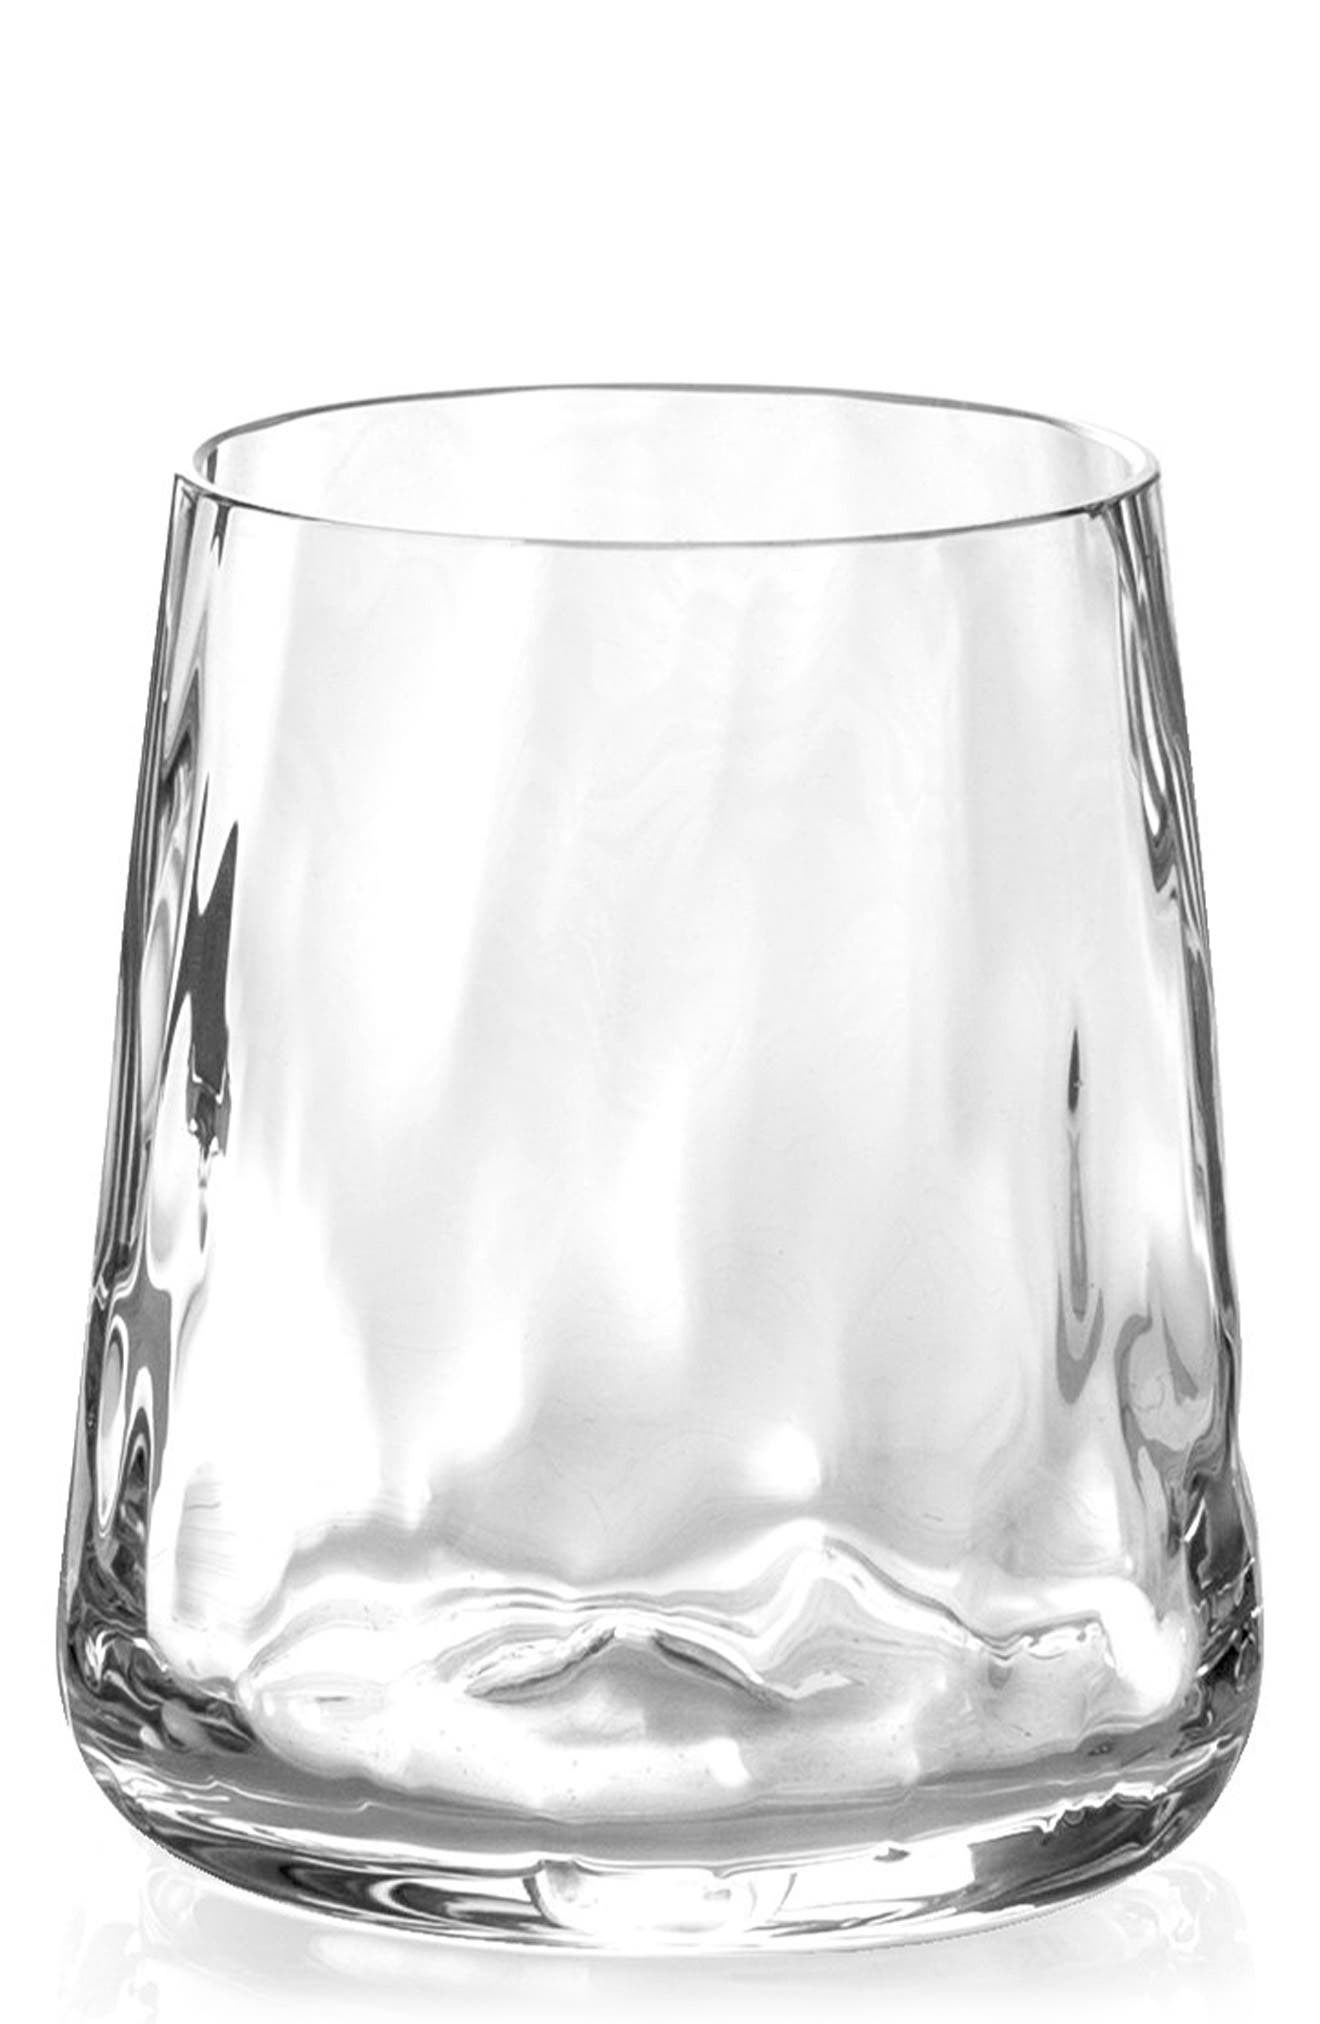 Michael Aram Ripple Effect Set of 4 Double Old Fashioned Glasses